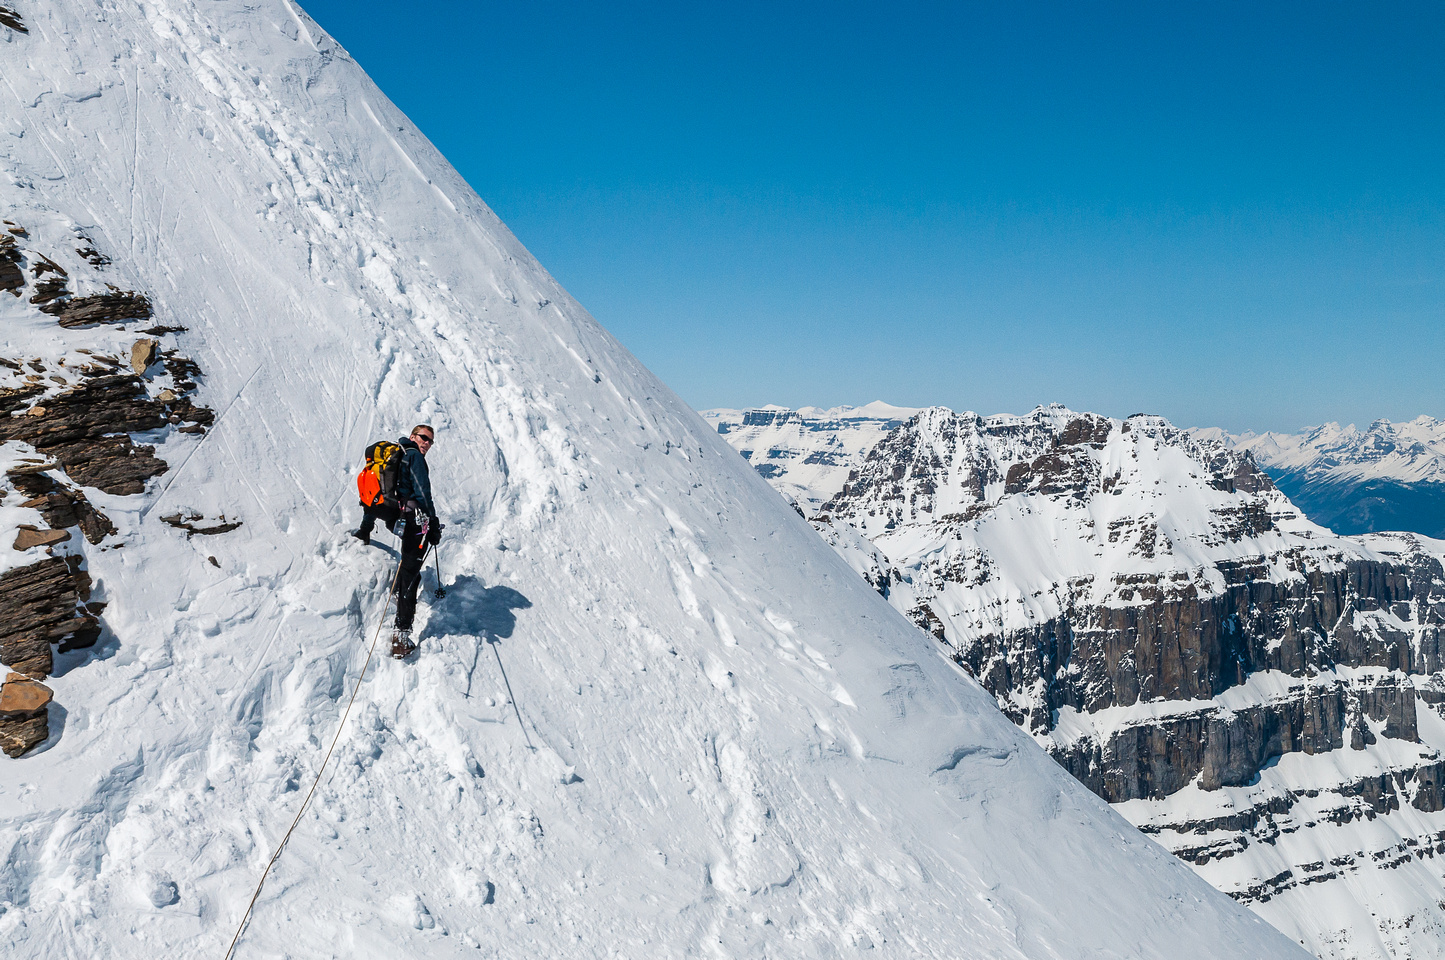 Reascending the notch on the west ridge.